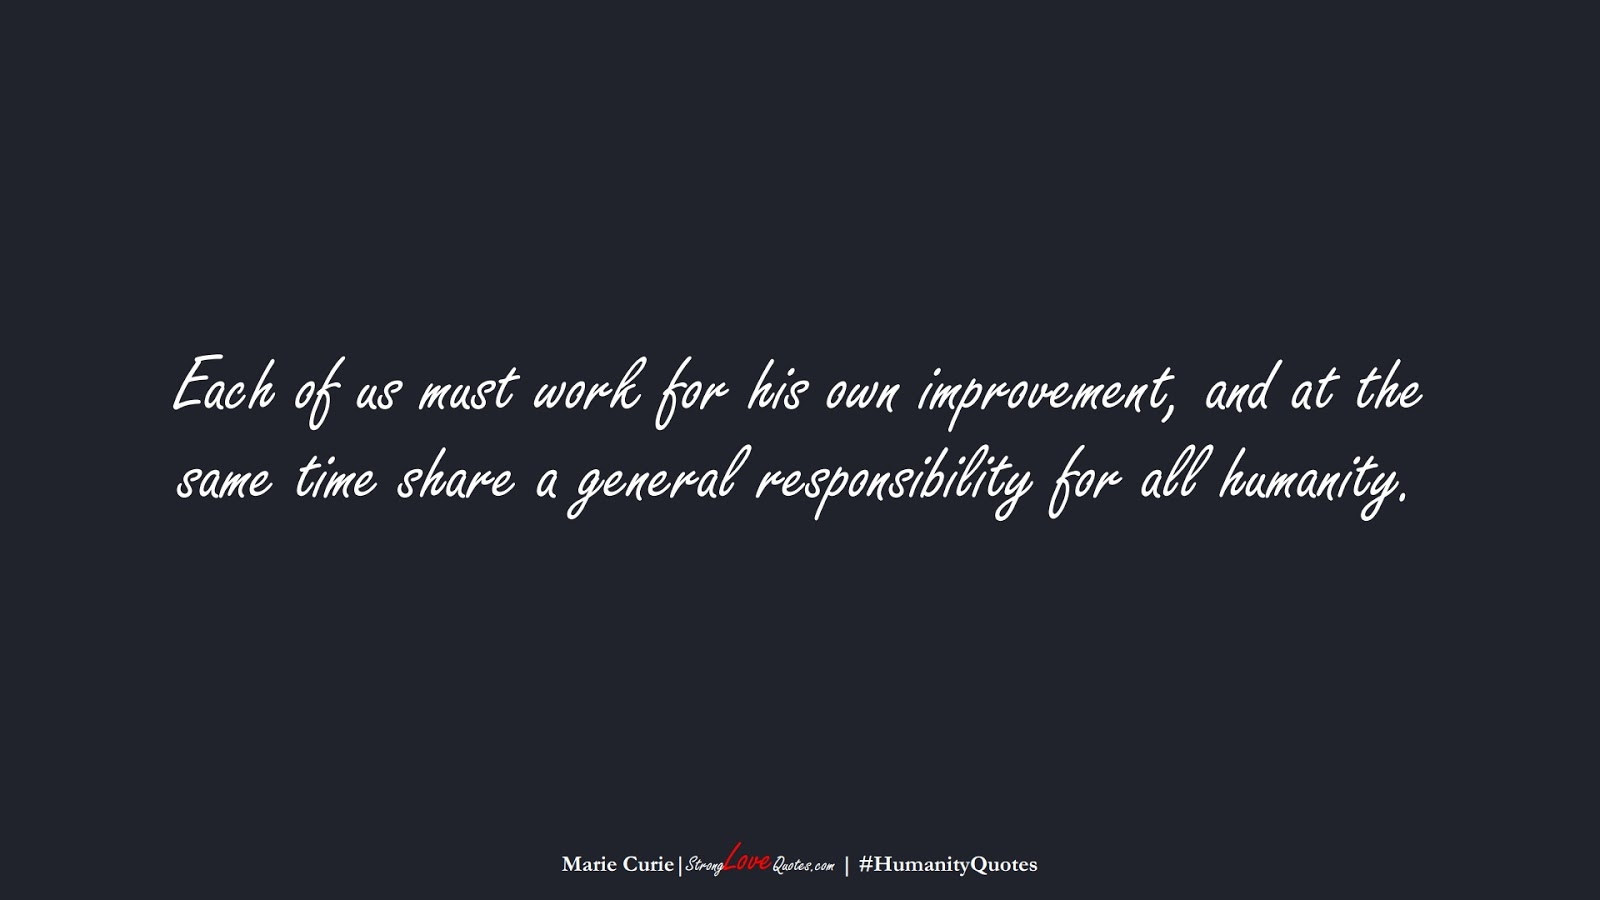 Each of us must work for his own improvement, and at the same time share a general responsibility for all humanity. (Marie Curie);  #HumanityQuotes